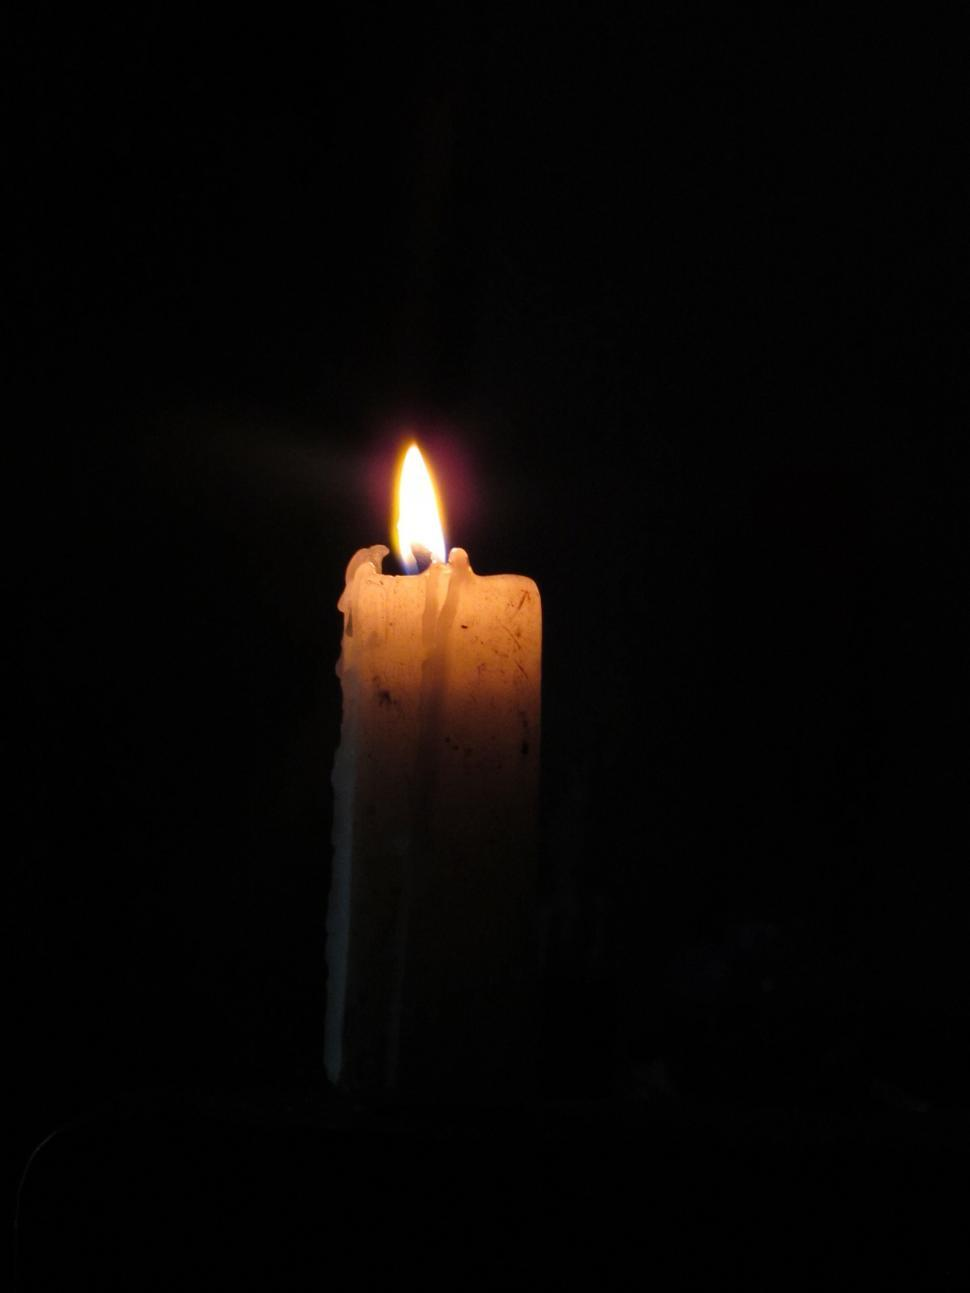 Download Free Stock Photo of Candle light on black background